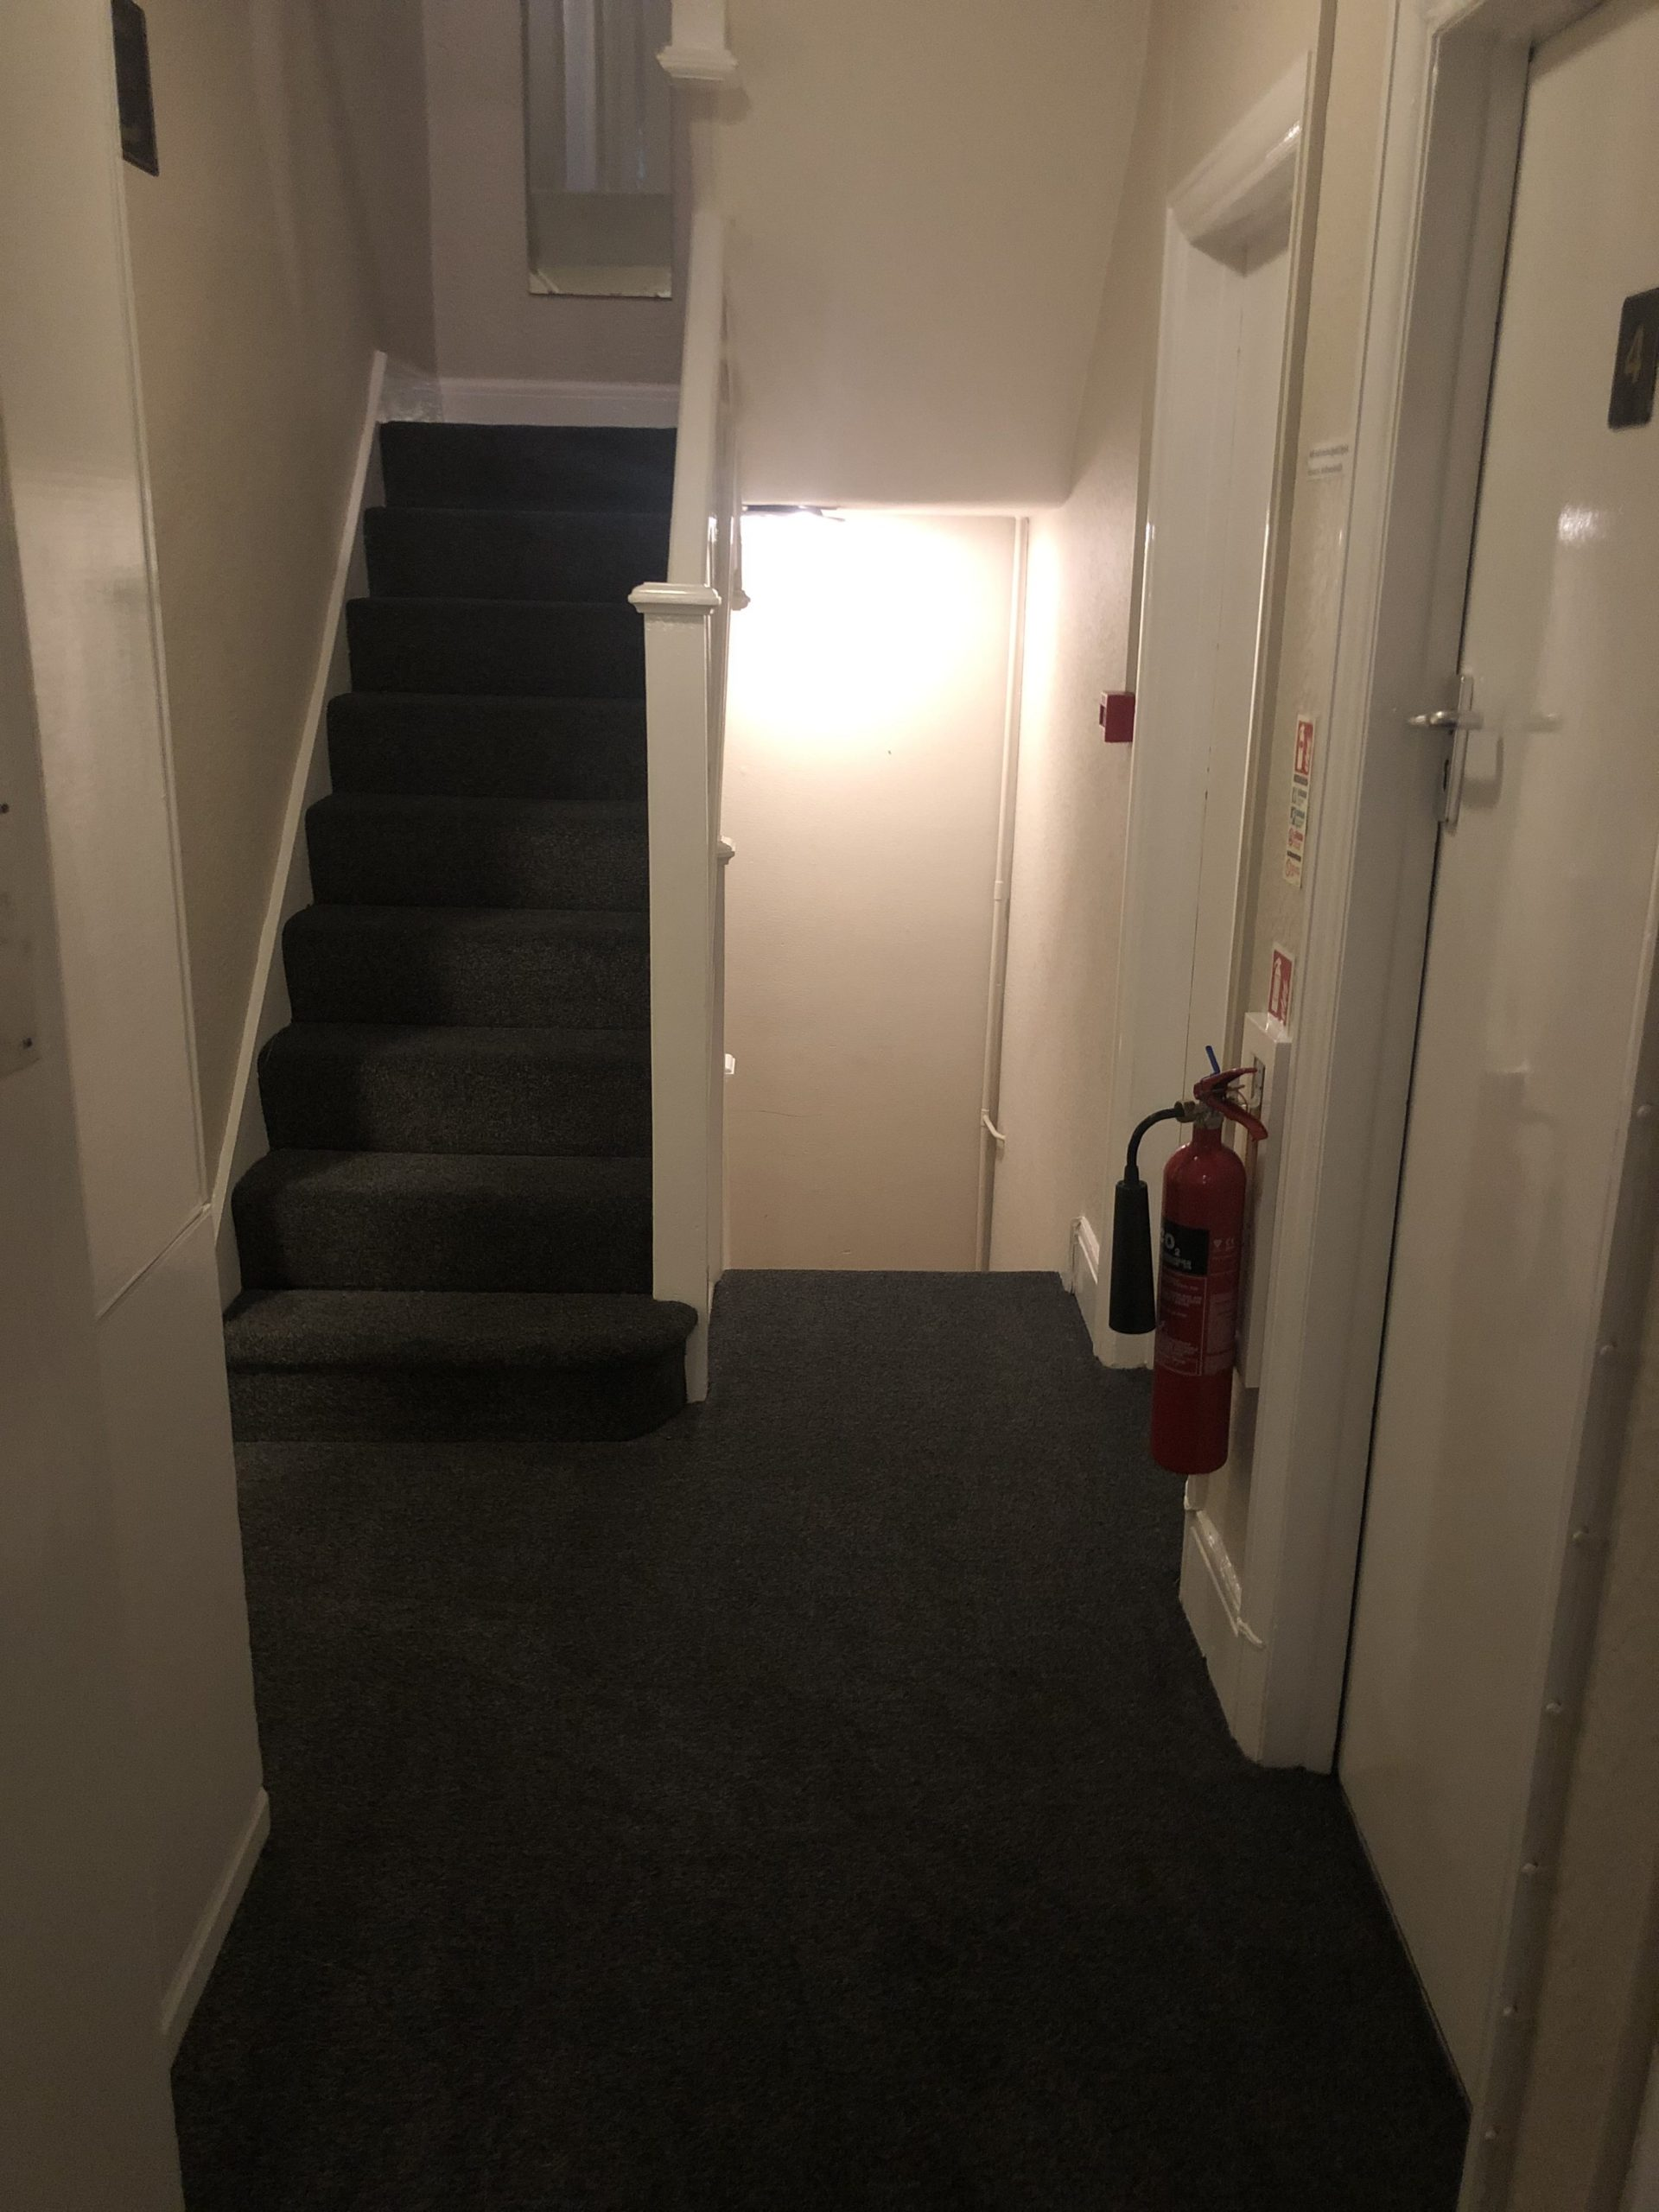 Our landing and stairway